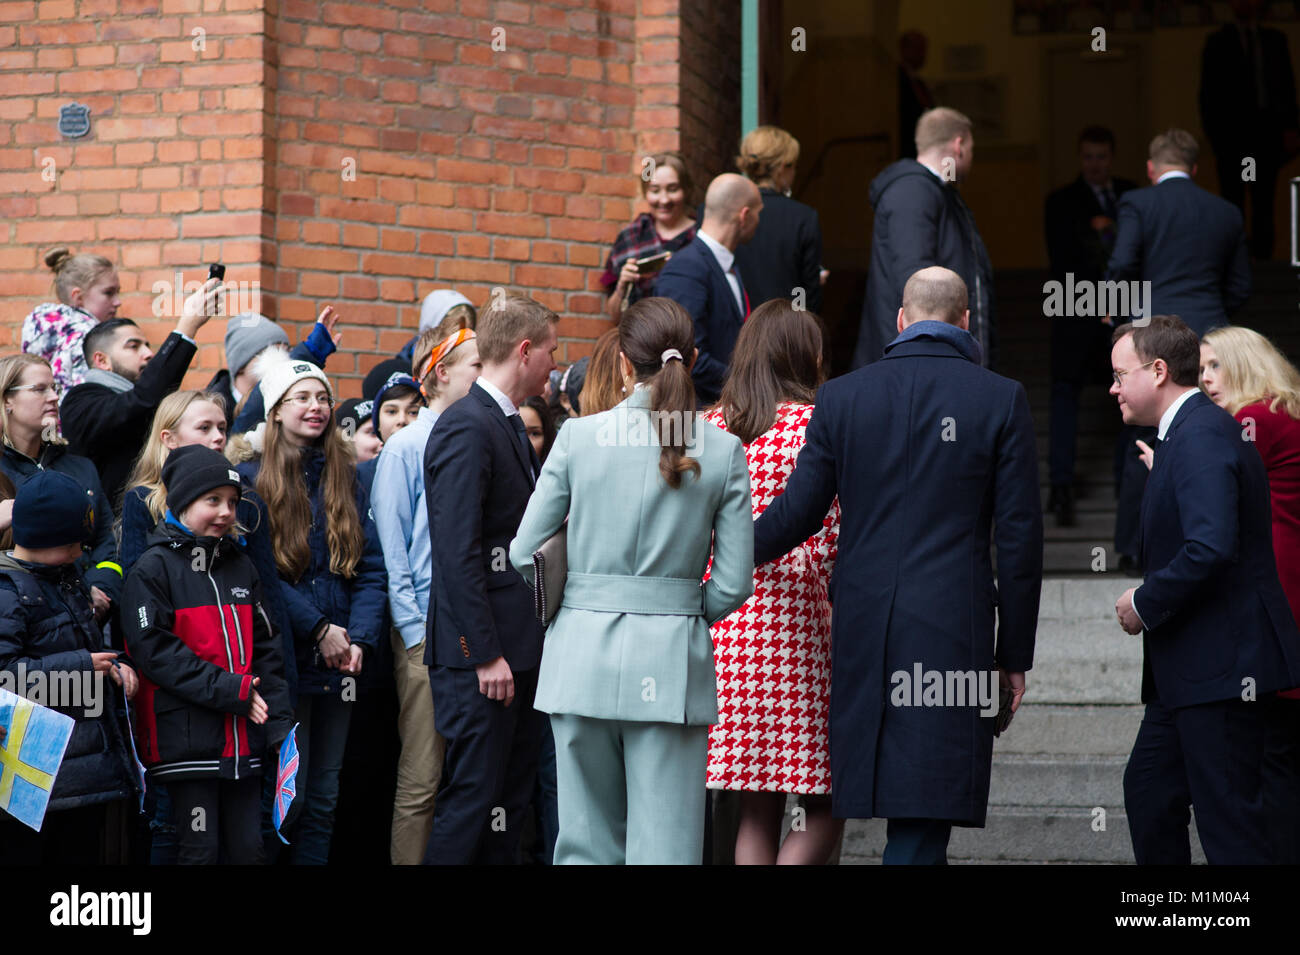 Stockholm, Sweden, 31th January, 2018. The Duke and Duchess of Cambridge's Tour of Sweden 30th-31th January,2018 - Stock Image